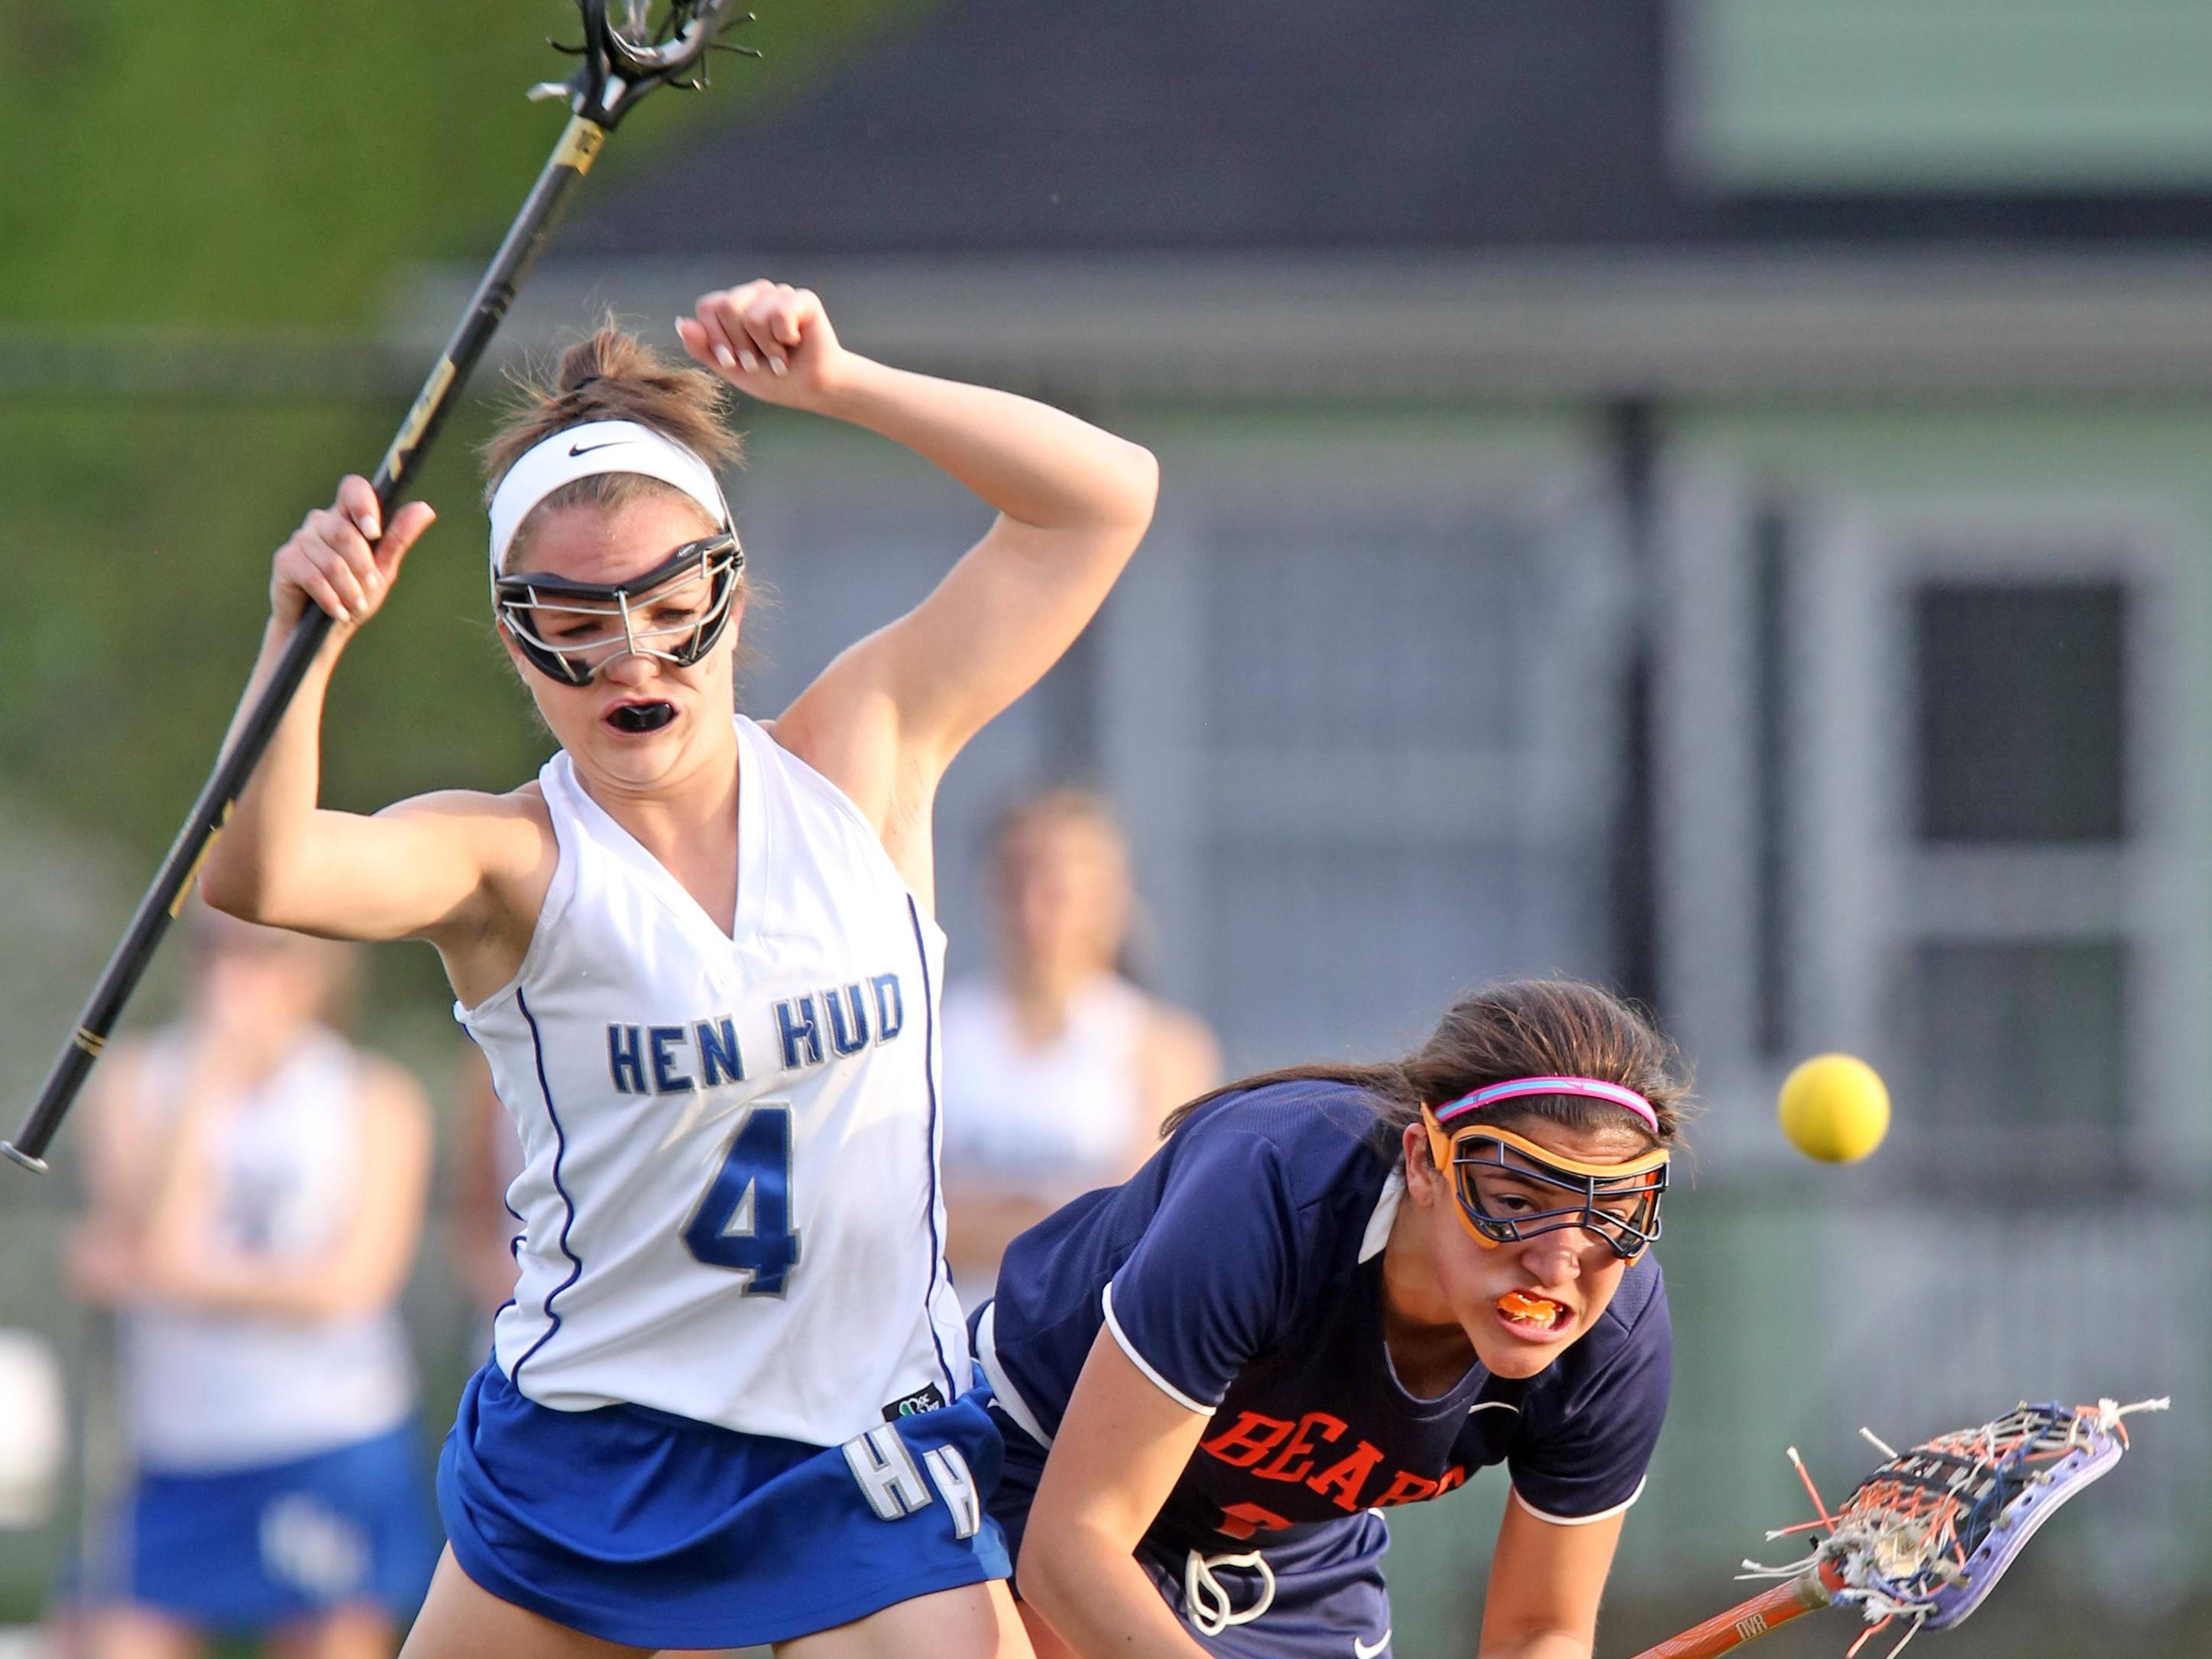 Briarcliff's Lexi Grasso, right, and Hen Hud's Montana Garrett battle for ball control during Wednesday's girls lacrosse game at Hendrick Hudson High School in Montrose. The Sailors won 11-10.